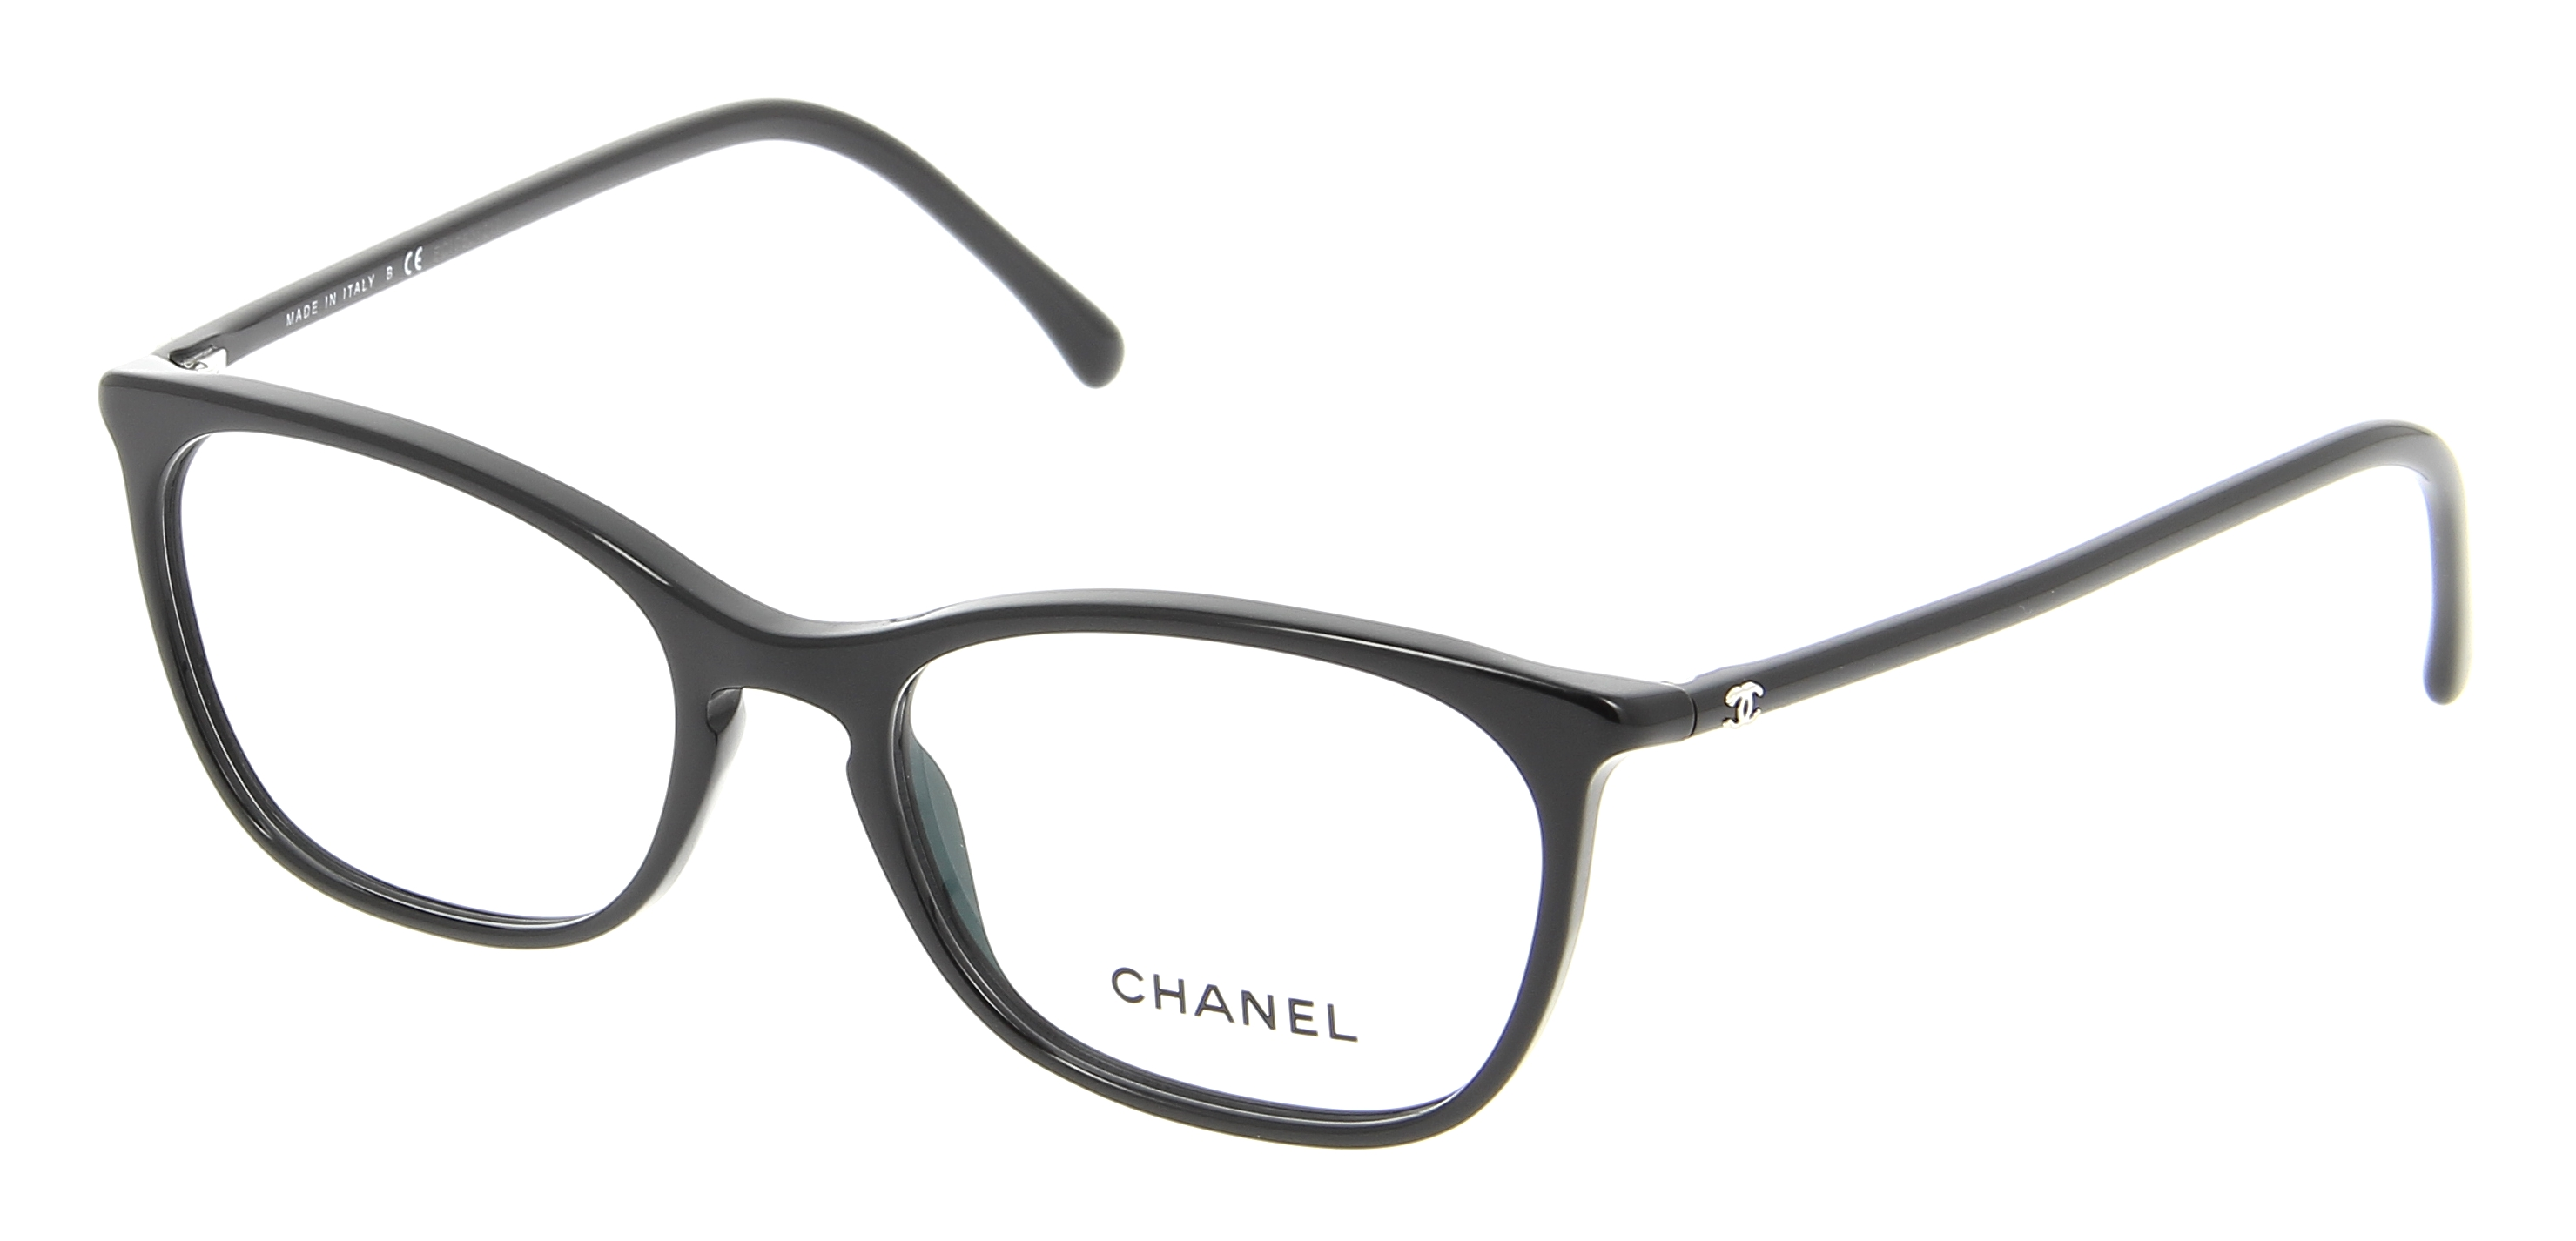 Croix Rouge Cergy Brillen Chanel Ch 3281 C501 54 17 Damen Noir Schmetterling